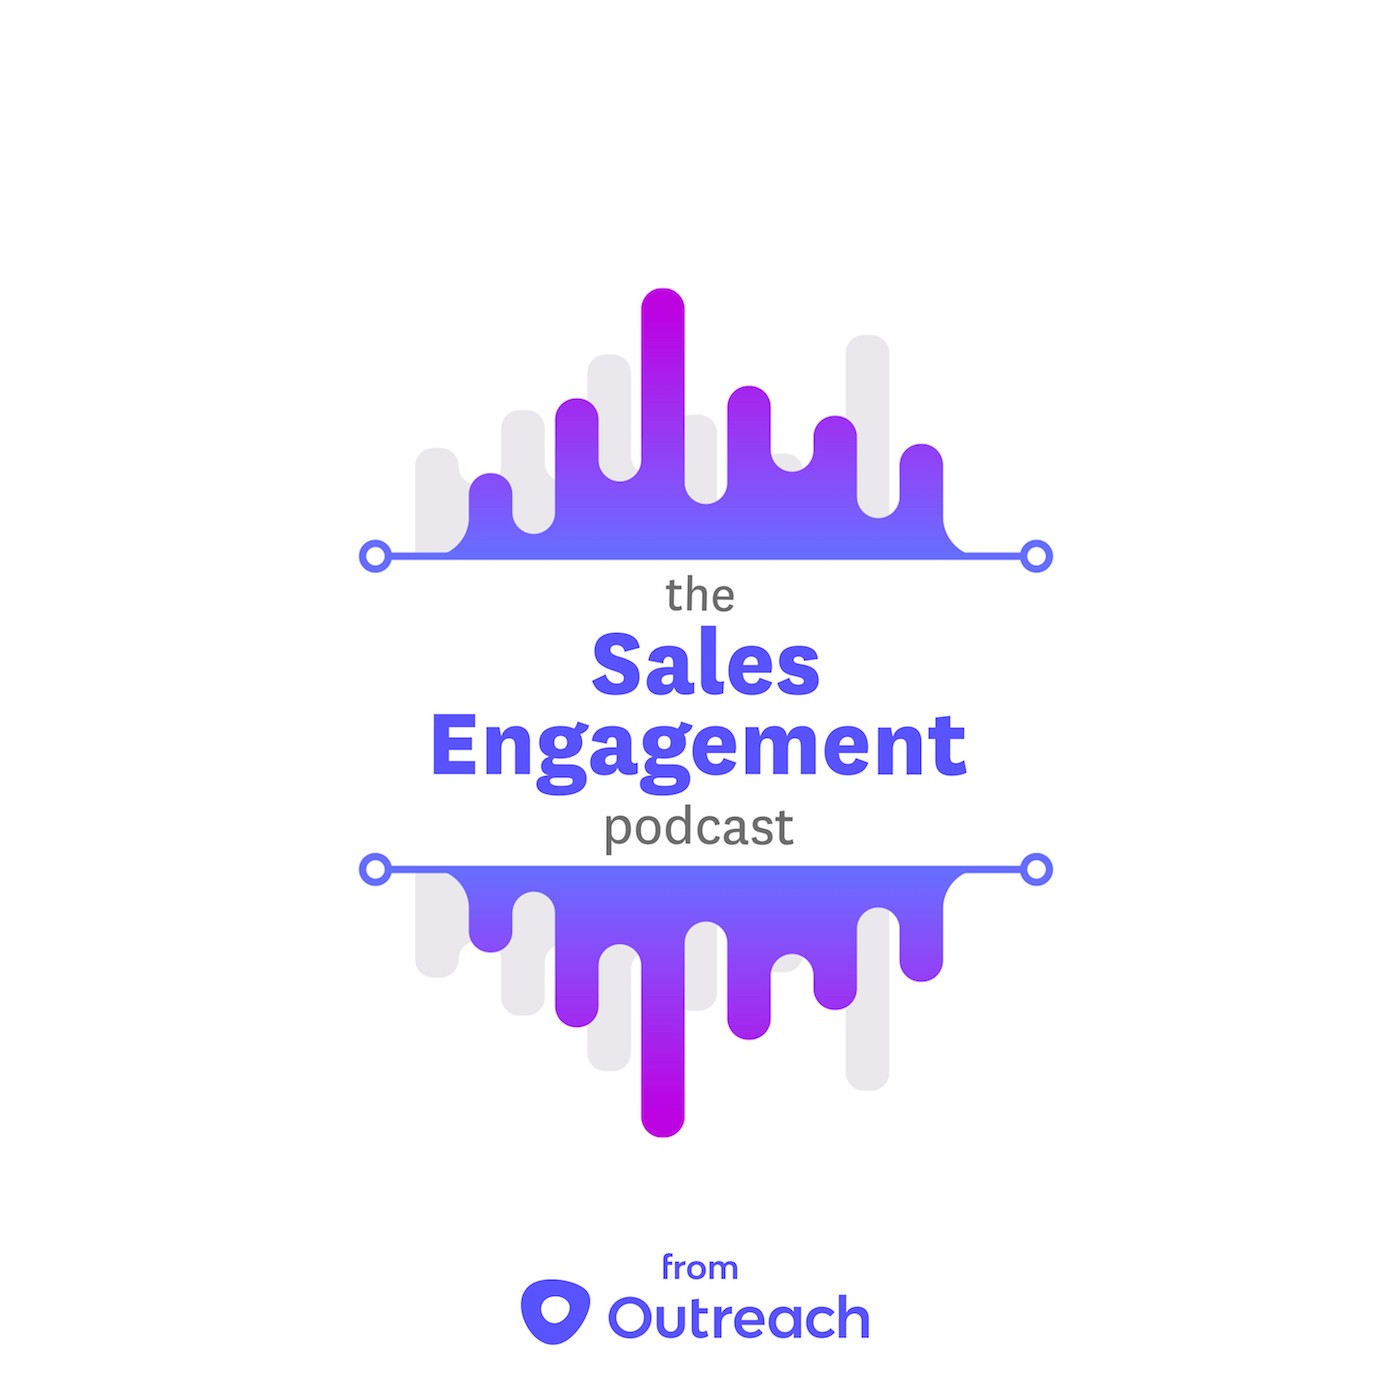 How Sales Engagement Has Changed in Last 5 Years